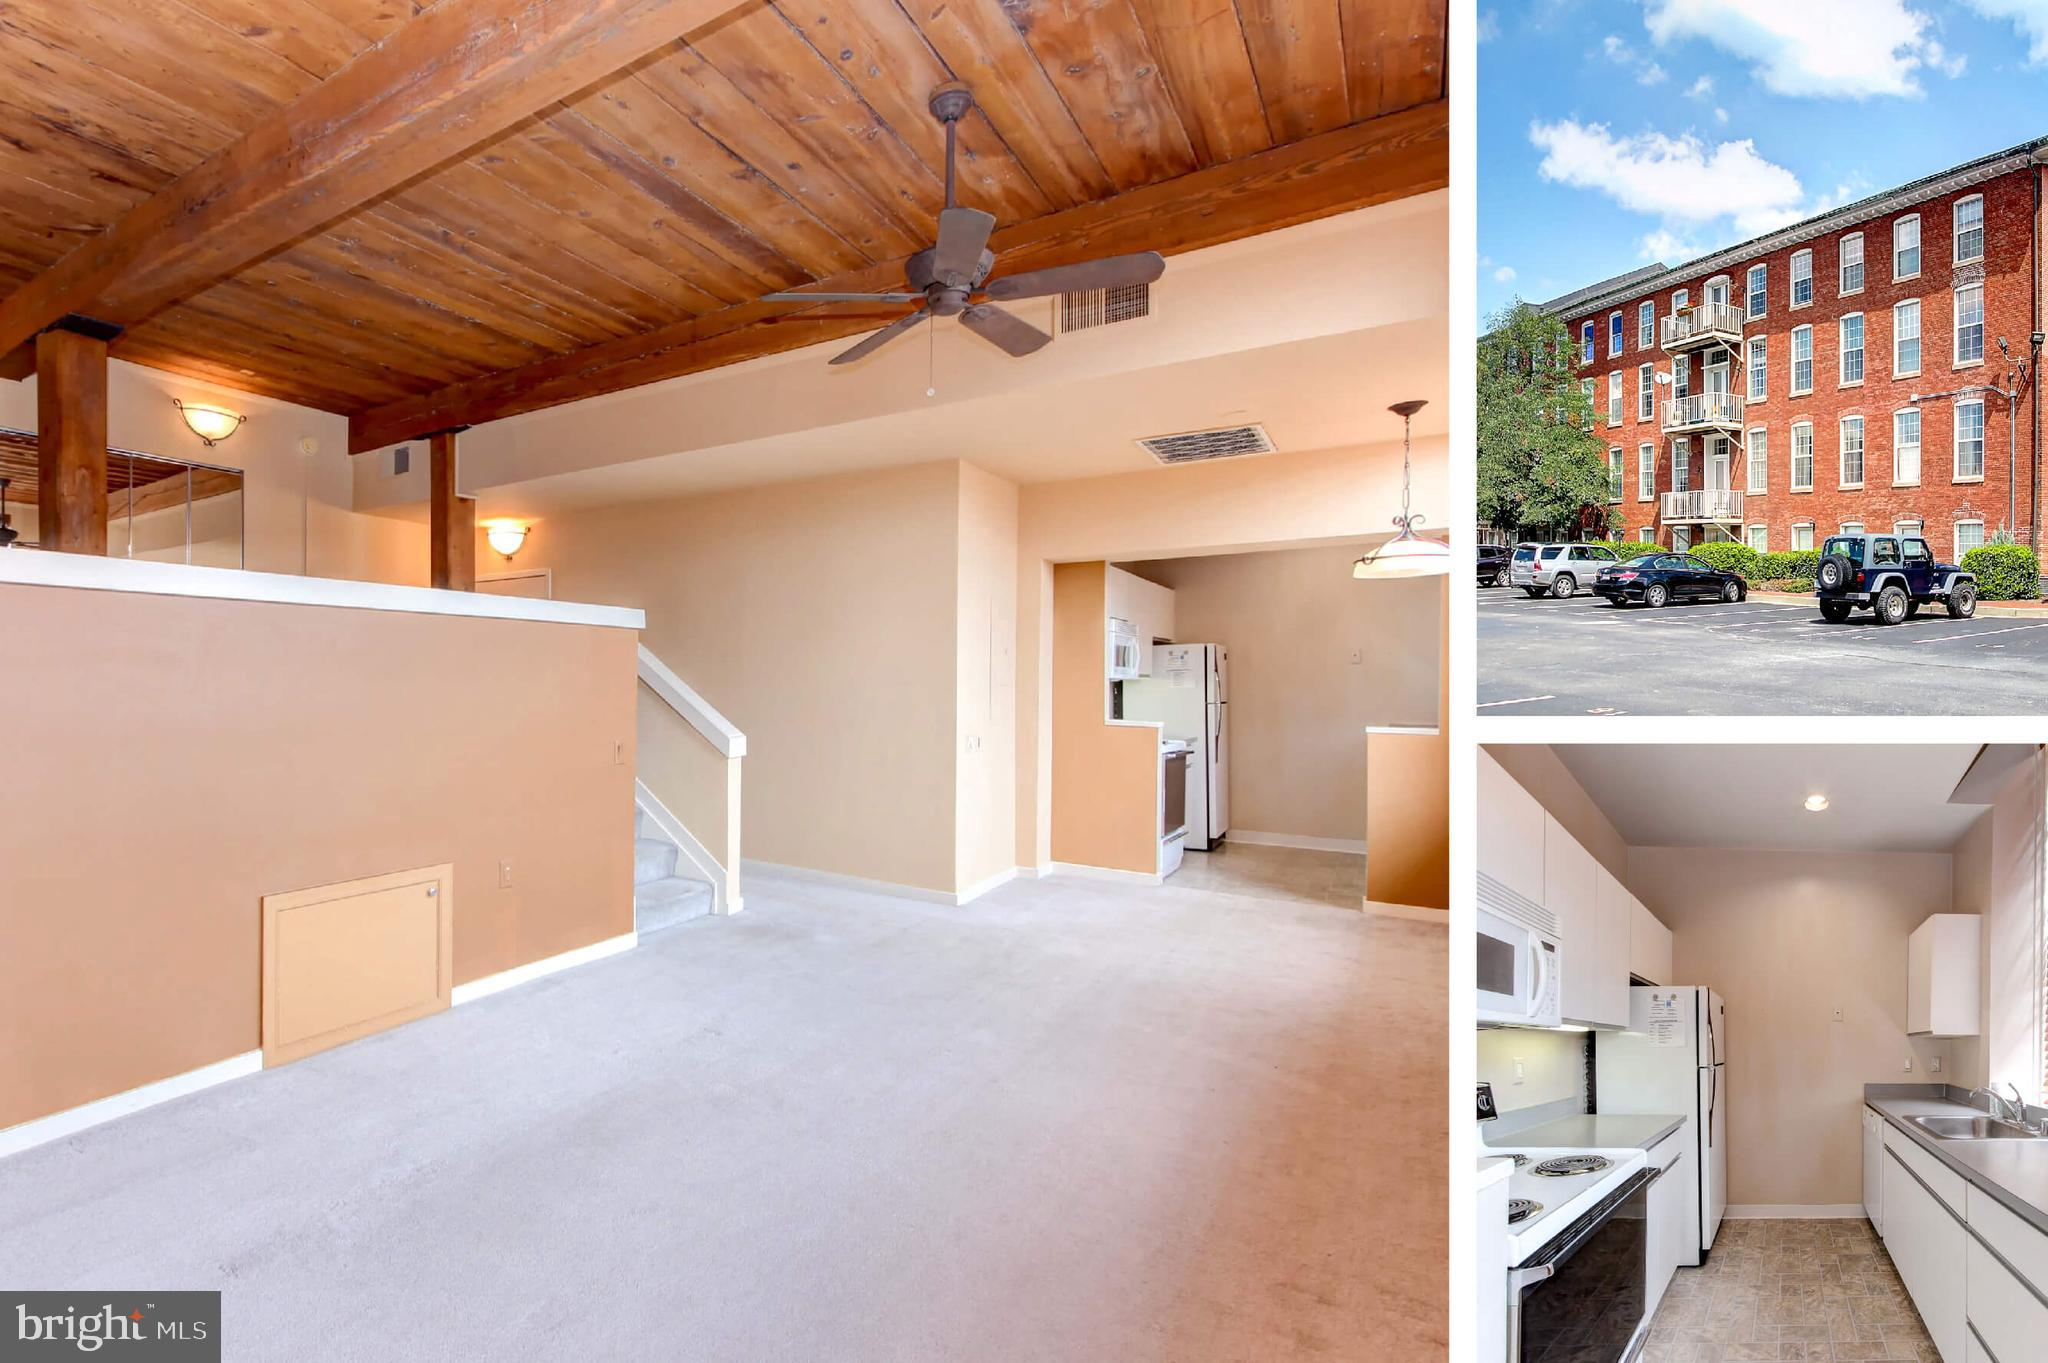 PRIME CANTON LOCATION Large loft located just steps away from the water & all that Canton has to off